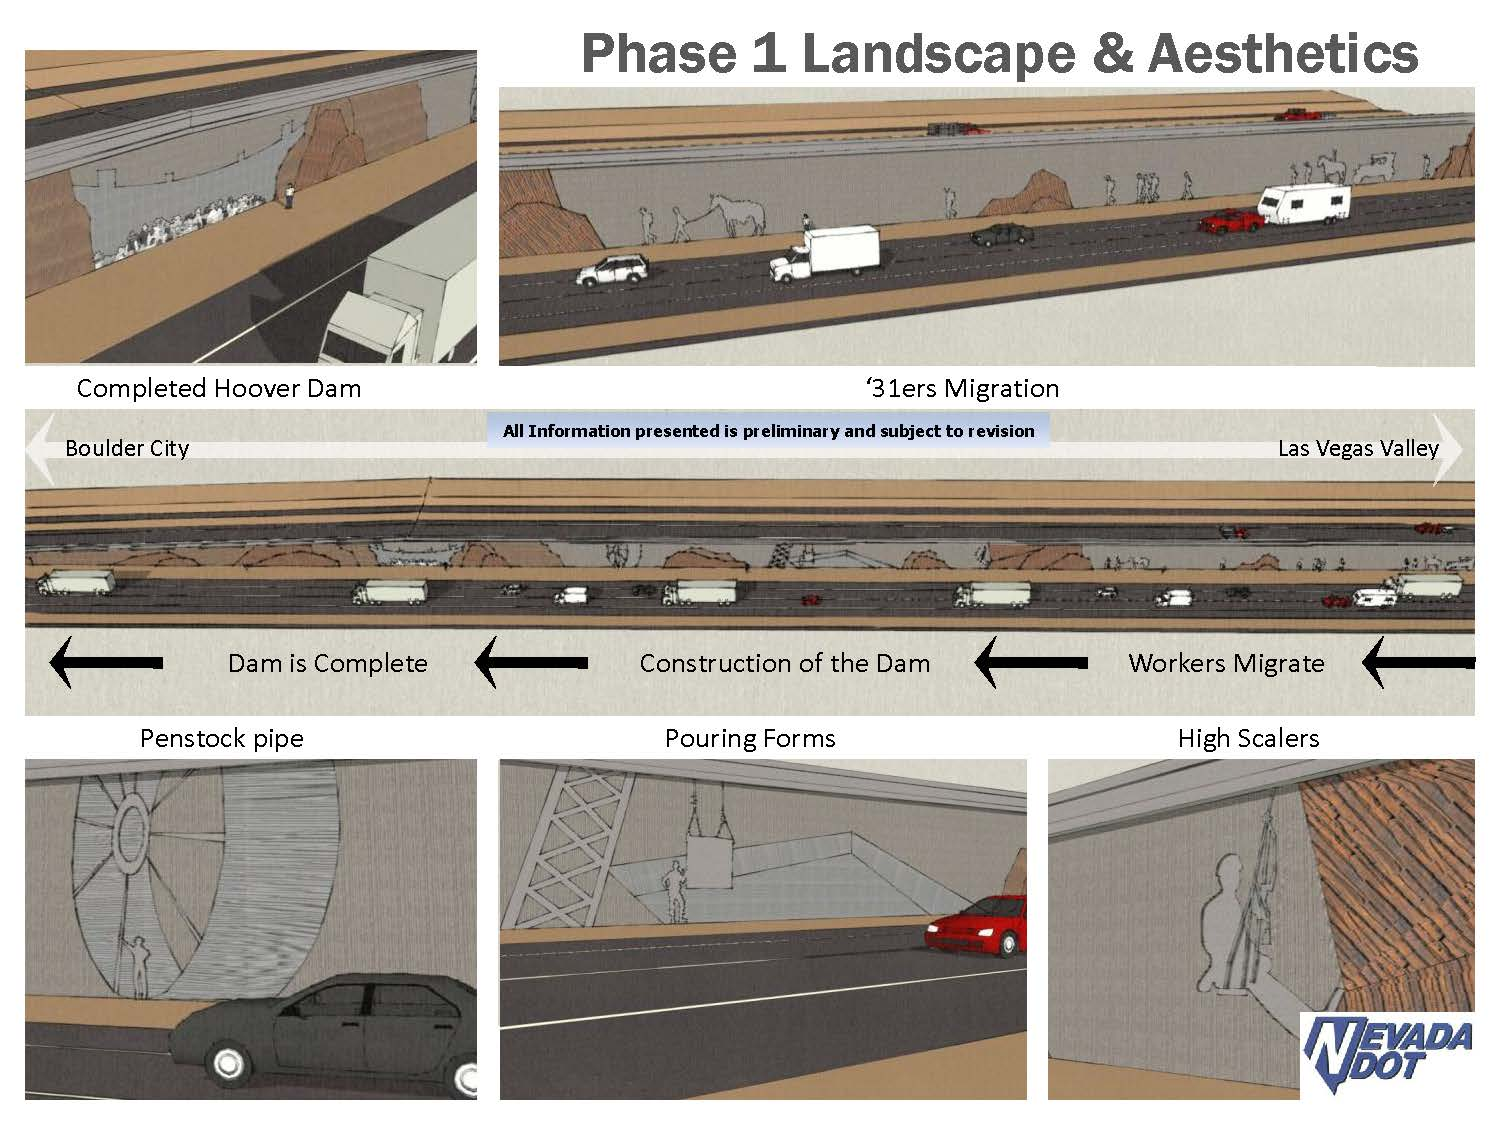 Boulder City Bypass Phase 1 Landscape and Aesthetics_Page_2